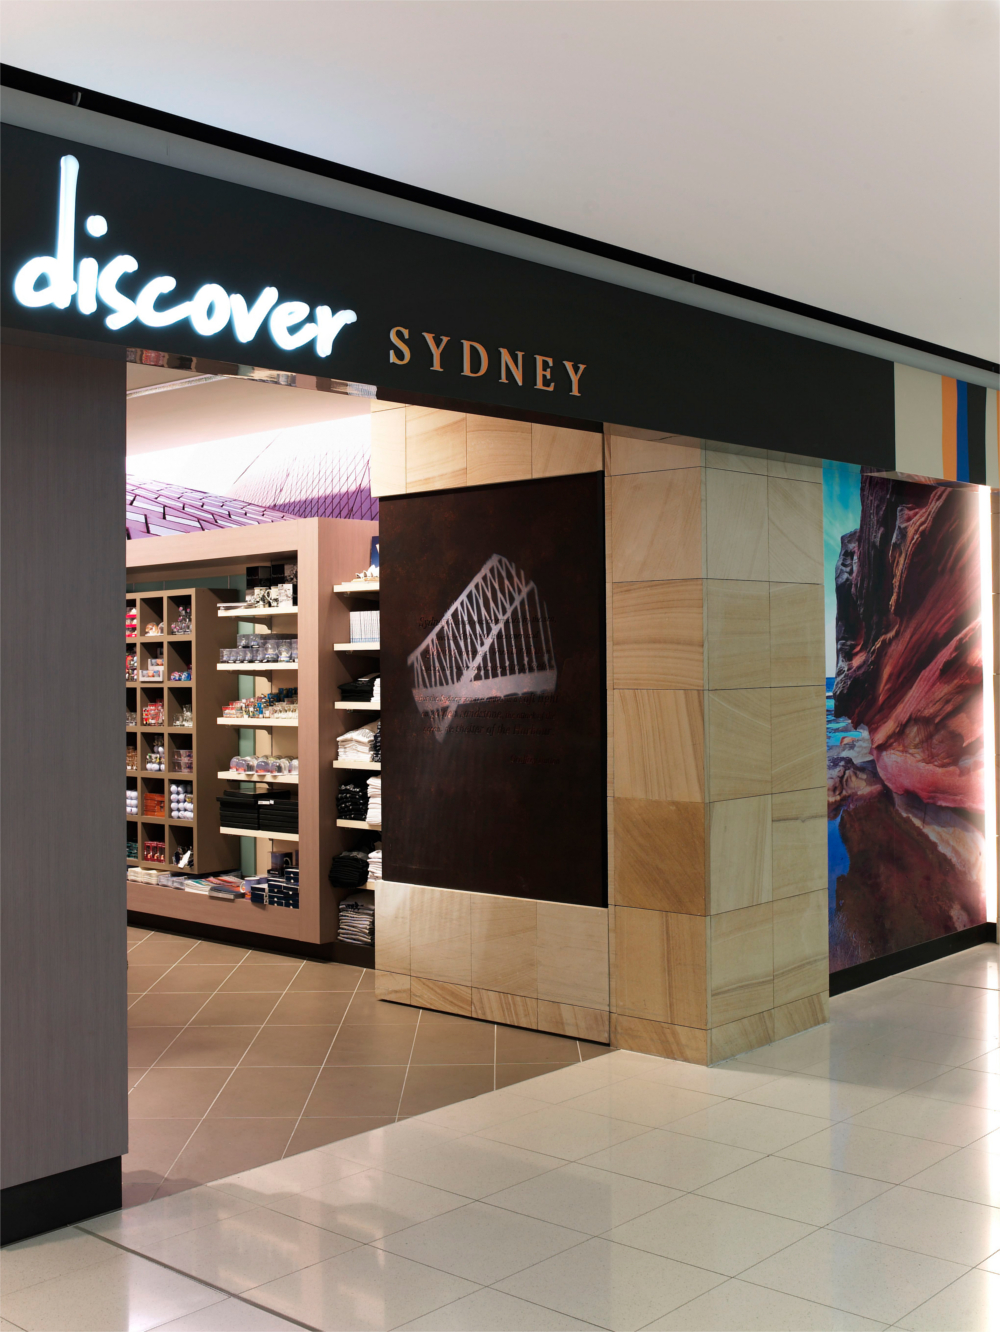 Discover, Sydney